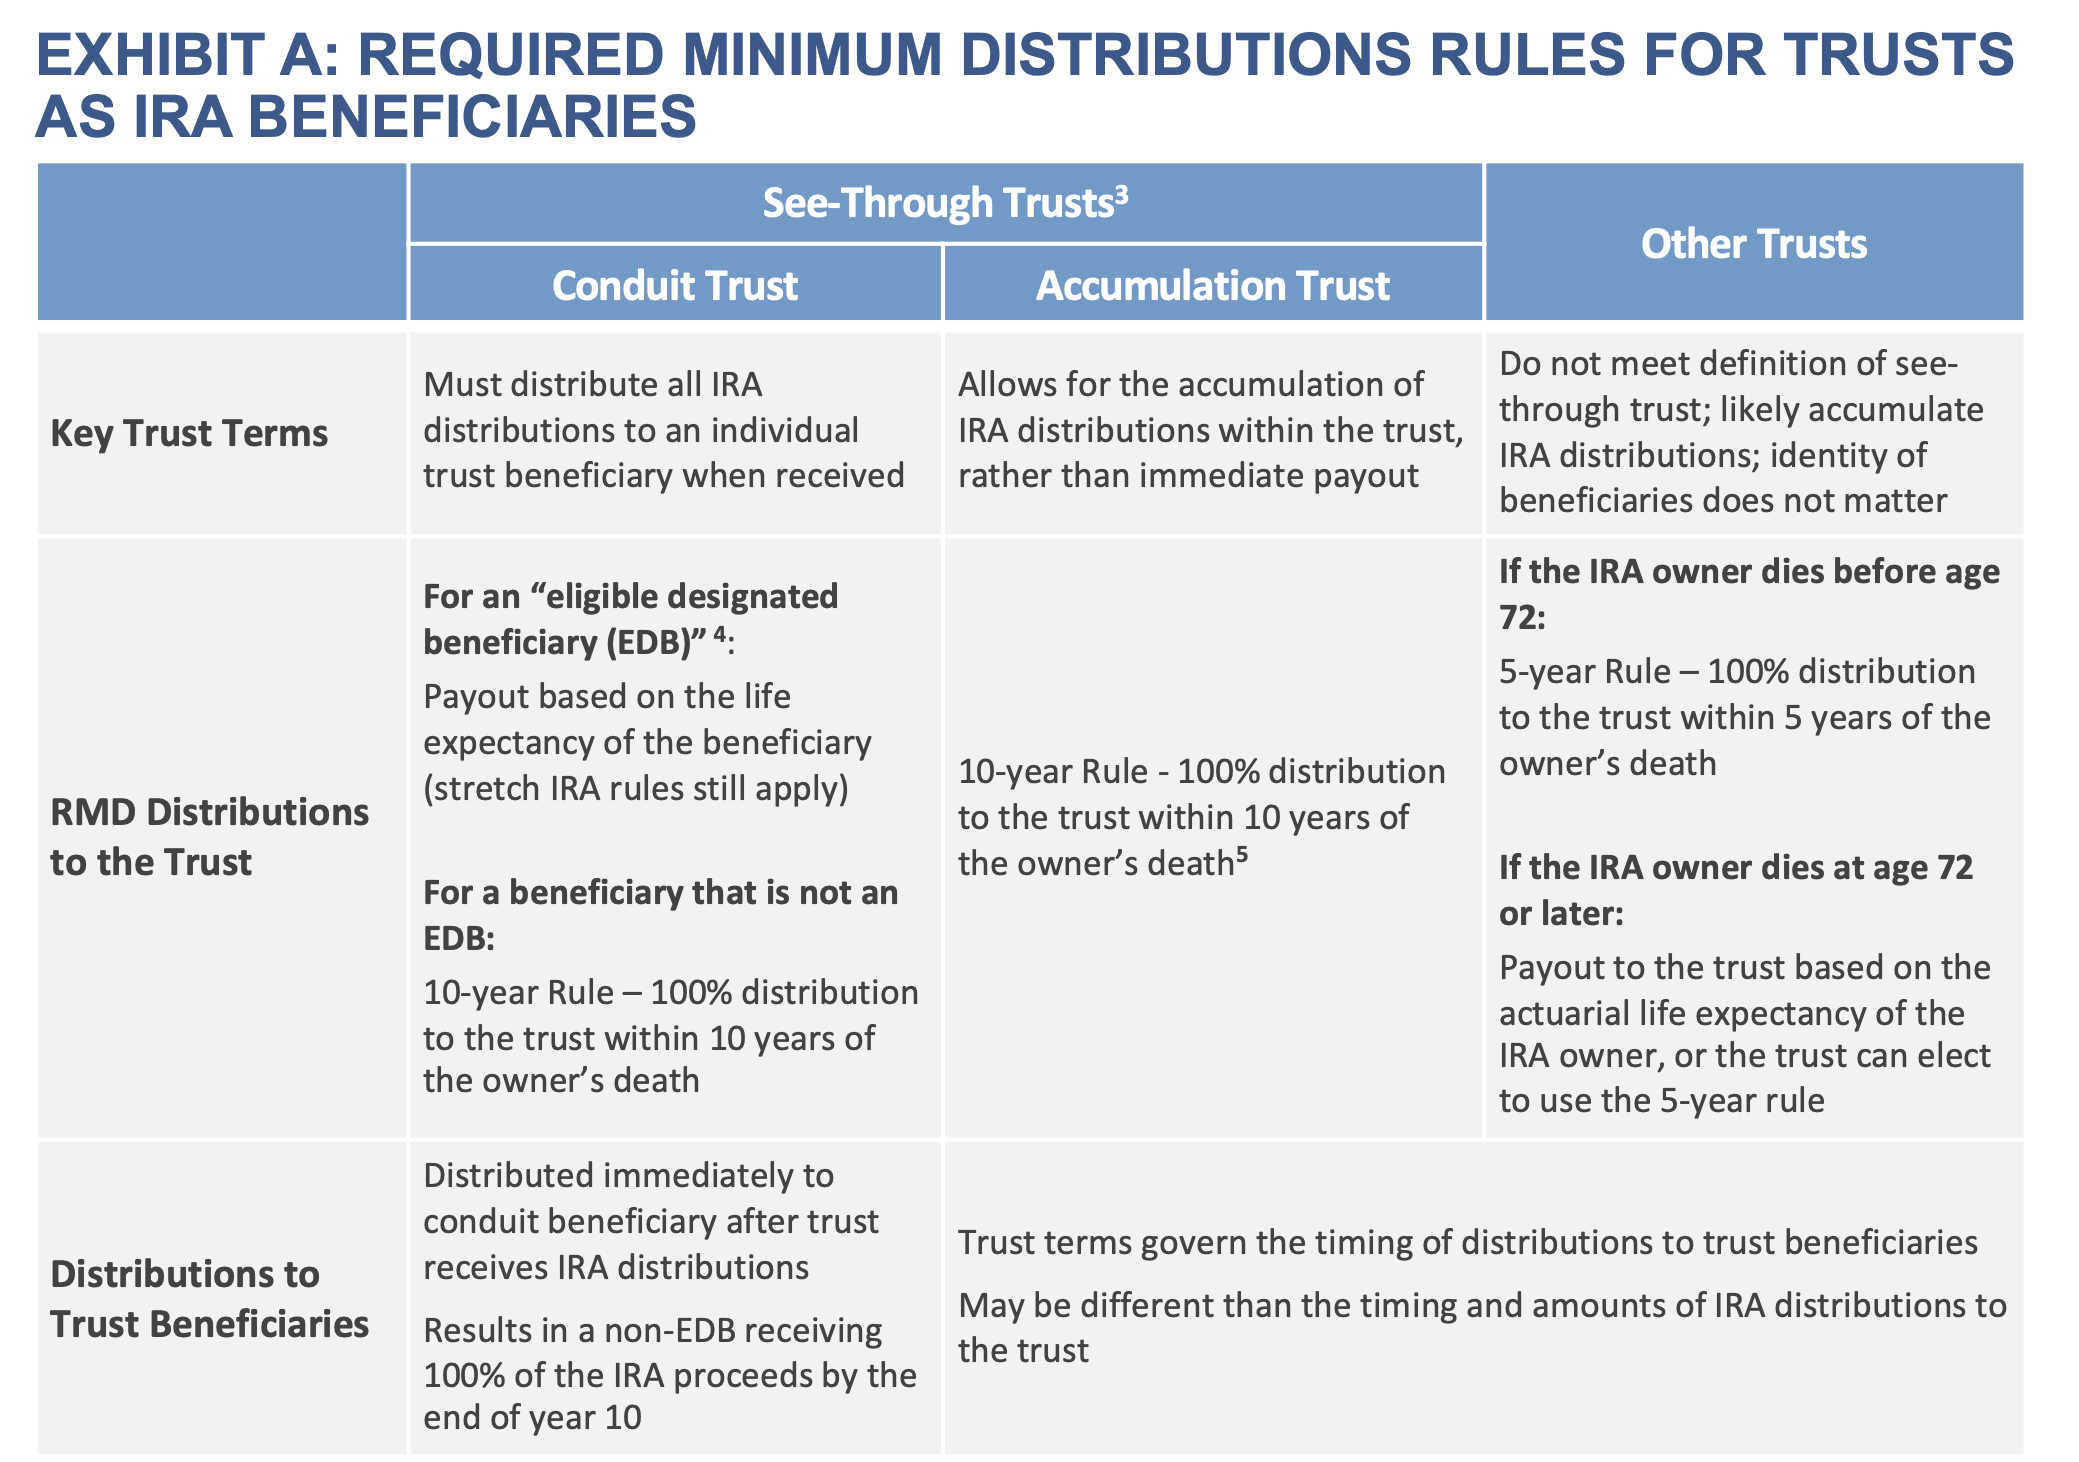 Exhibit A: Required Distribution Rules for Trusts as IRA Beneficiaries